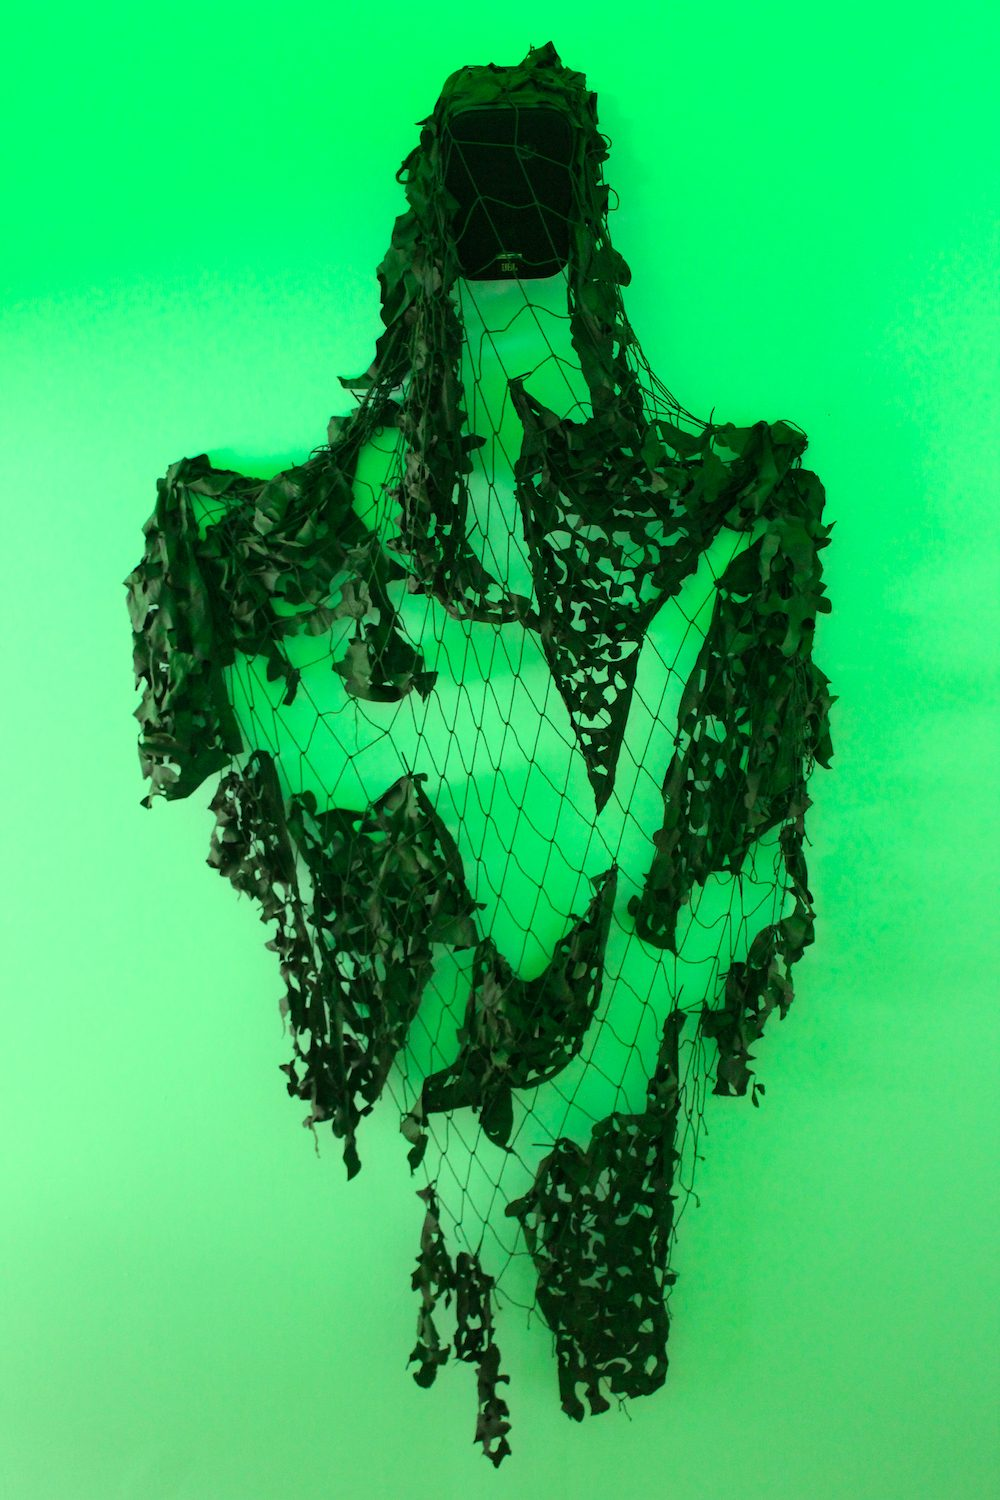 A camouflage net handing over a speaker on a bright green wall